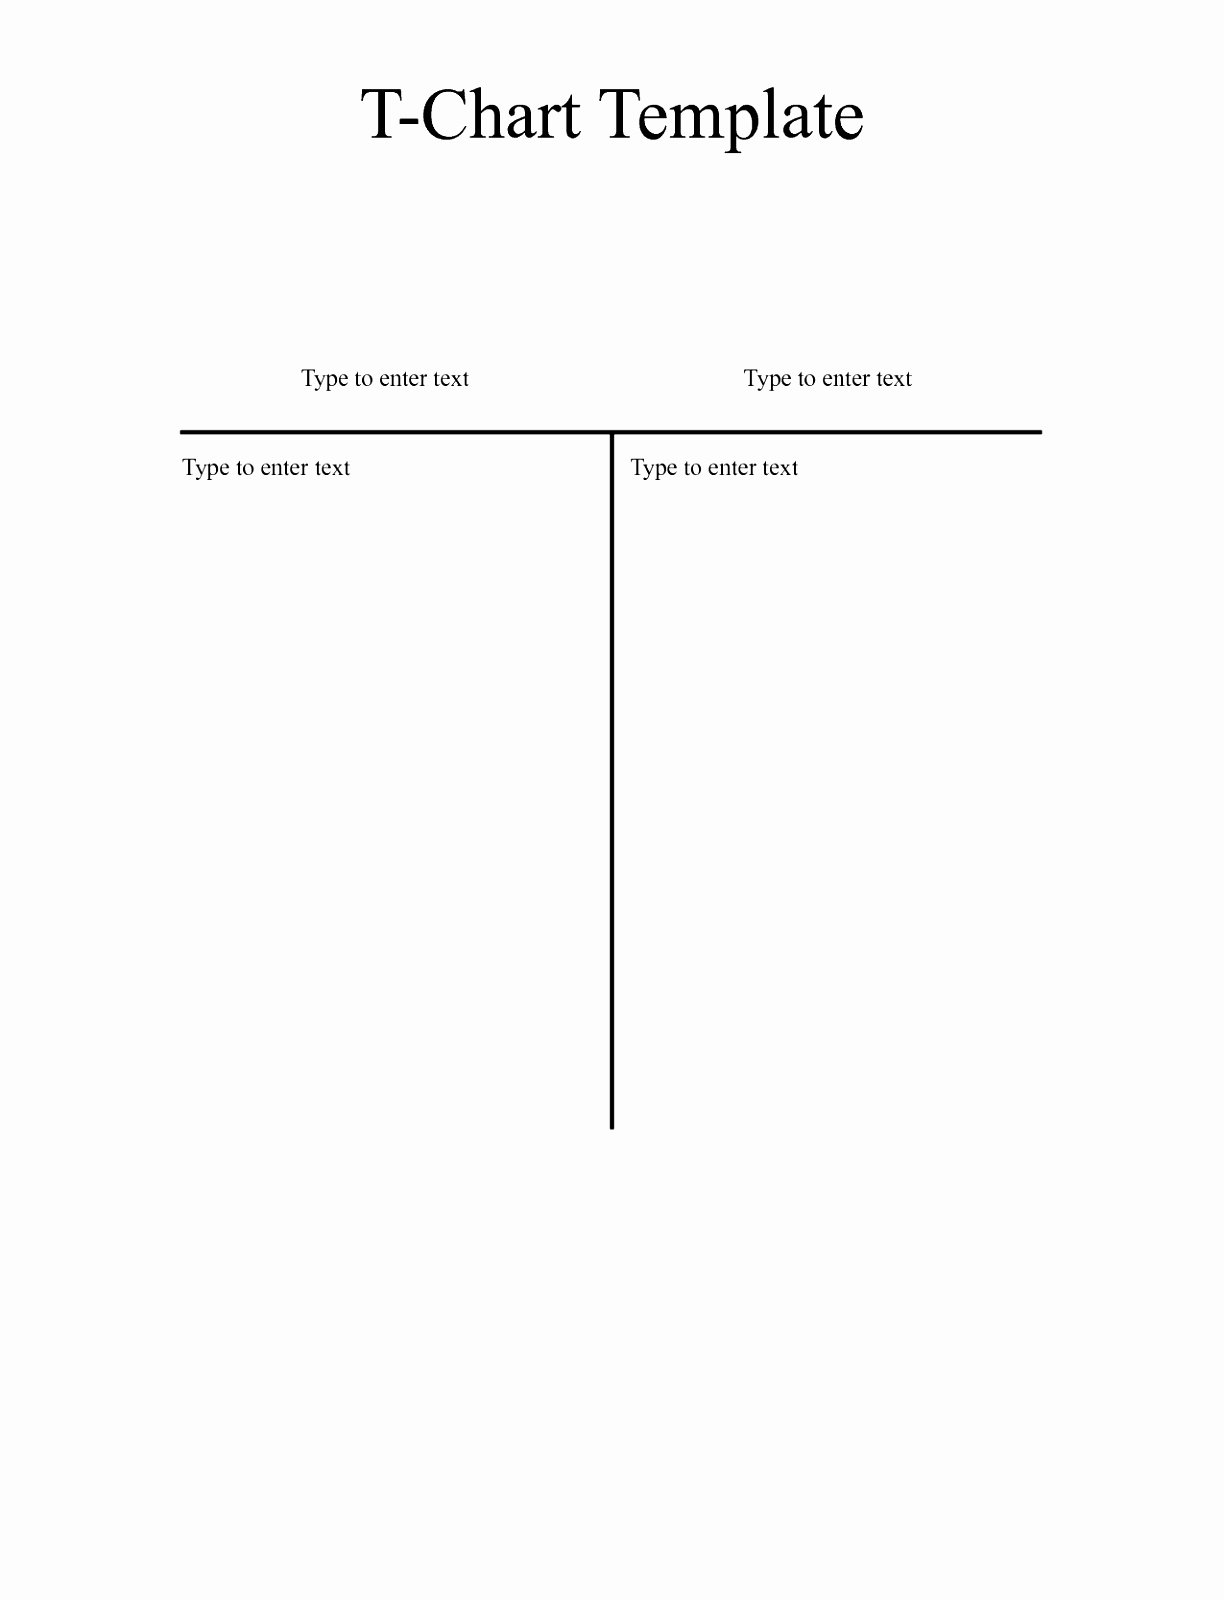 T Chart Template Word New 6 T Chart Template for Word Waoay